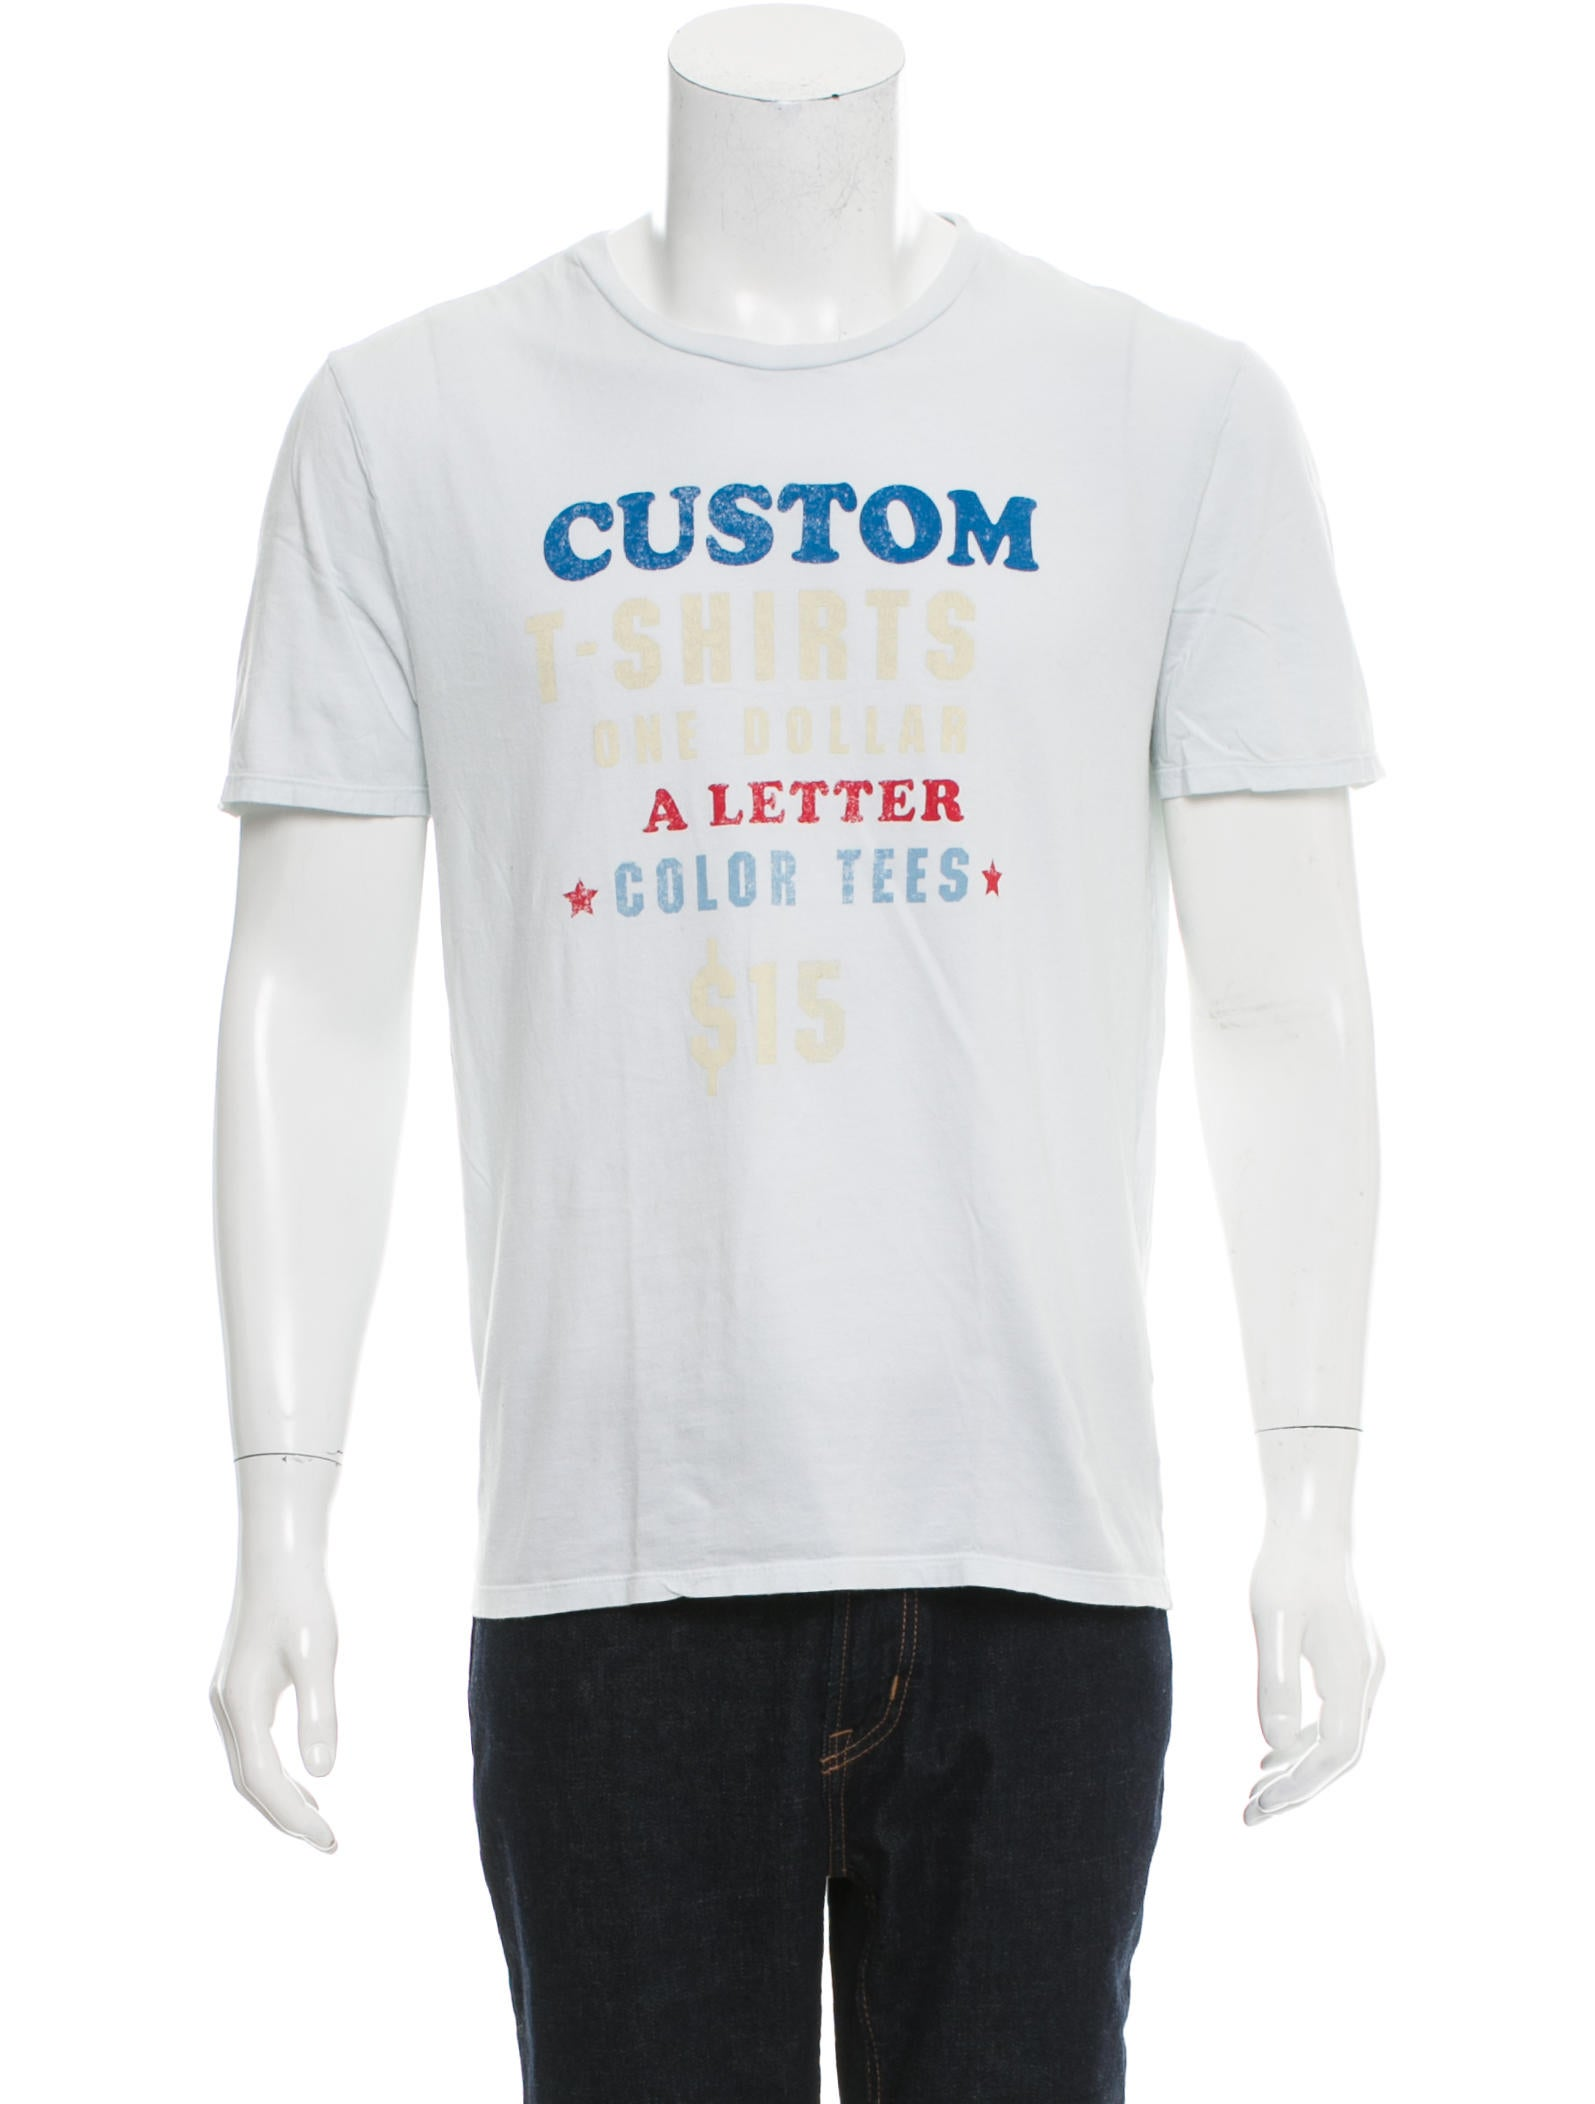 Maison margiela custom print crew neck t shirt clothing for Custom printed dress shirts